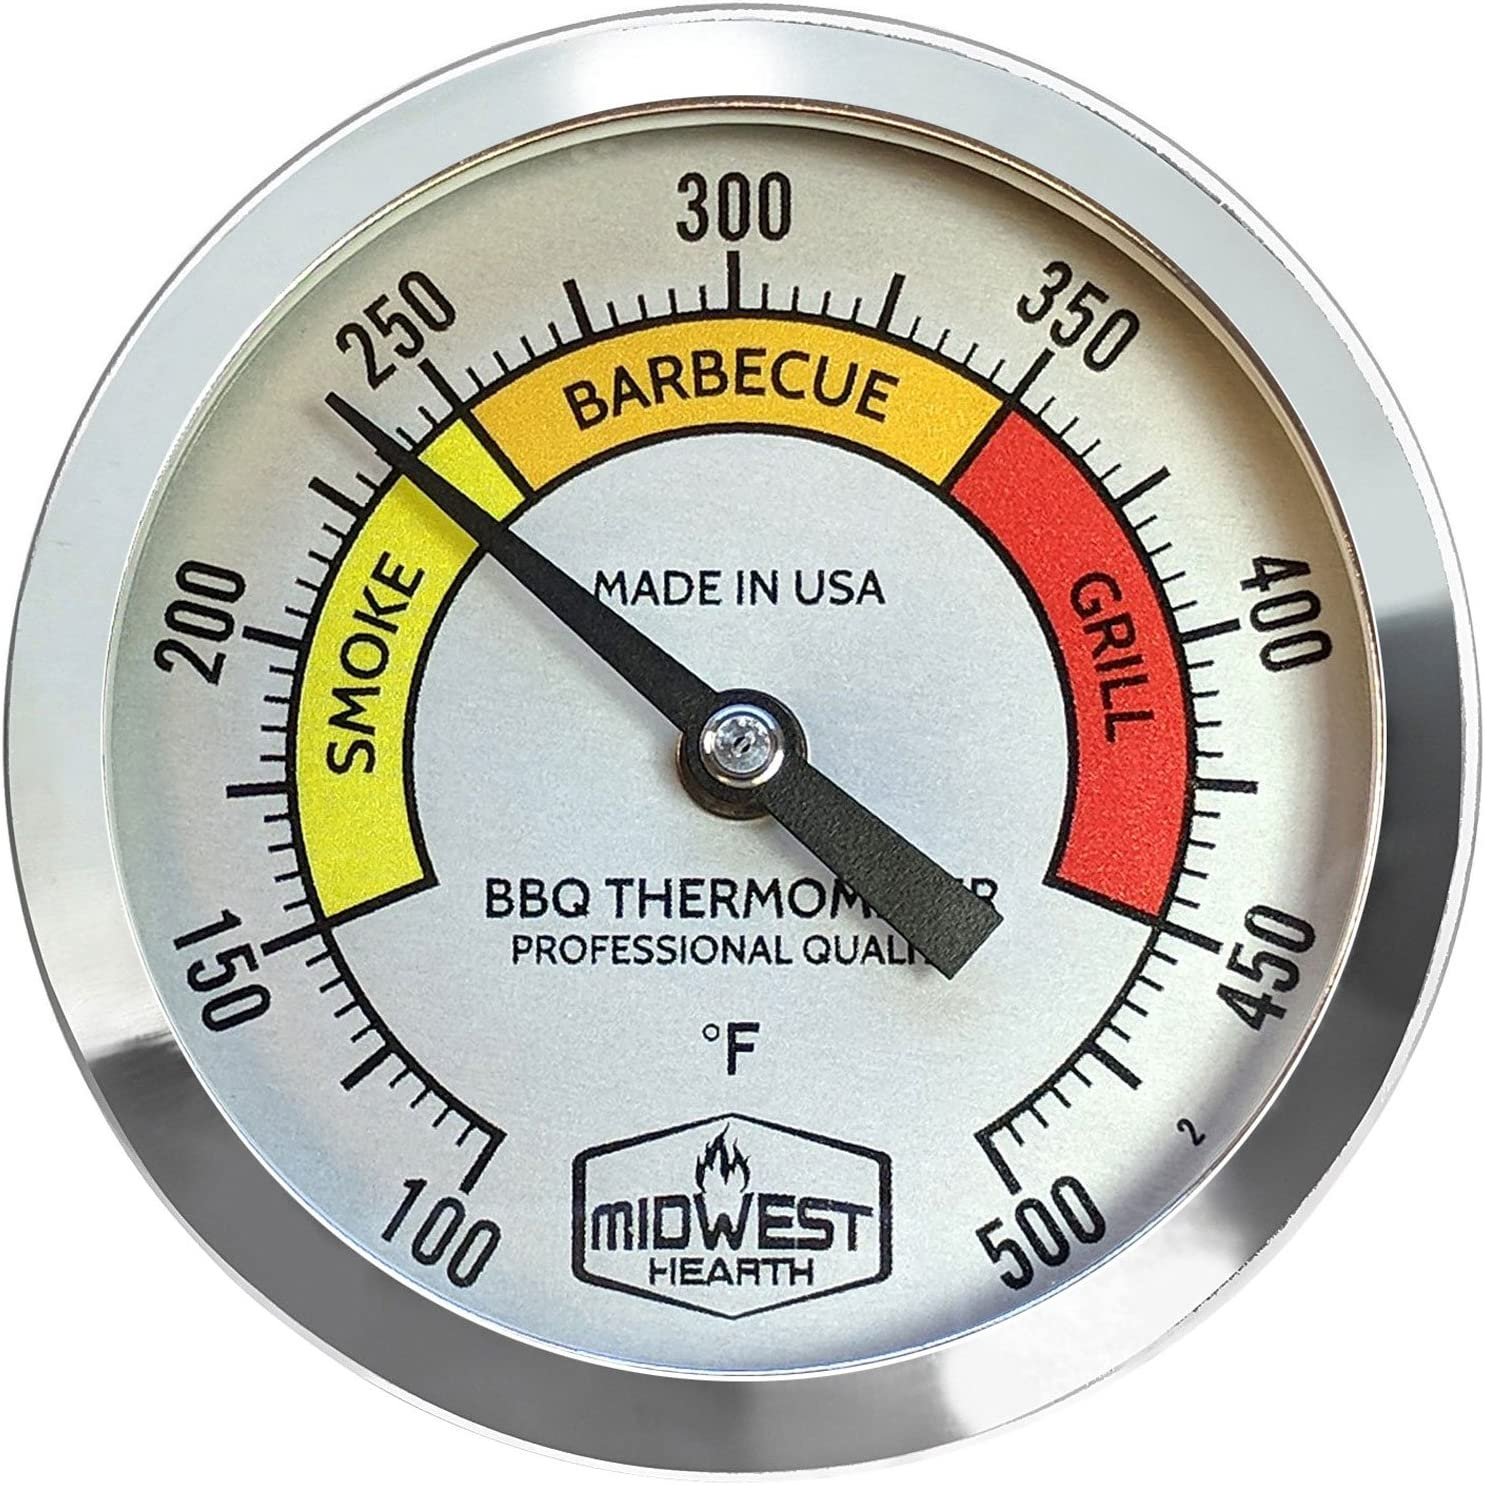 Grill Thermometers Patio, Lawn & Garden 4 Stem Length, Black